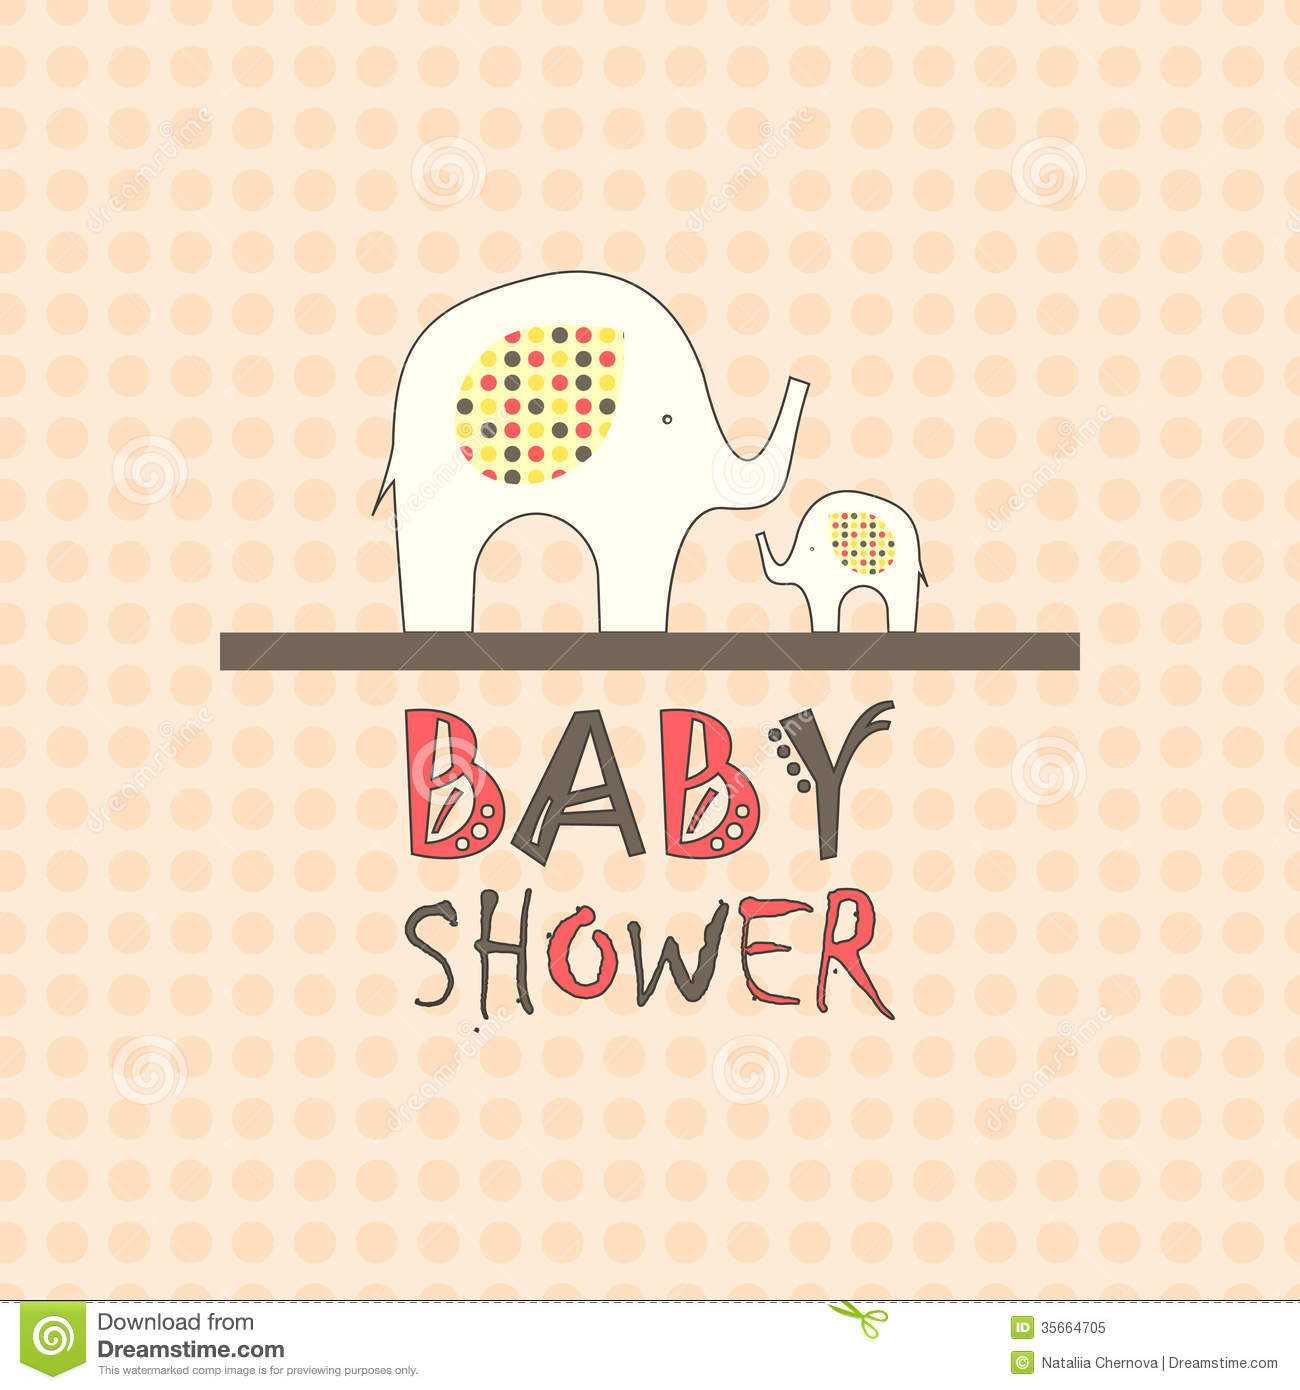 baby shower greeting card royalty free stock photo image 35664705